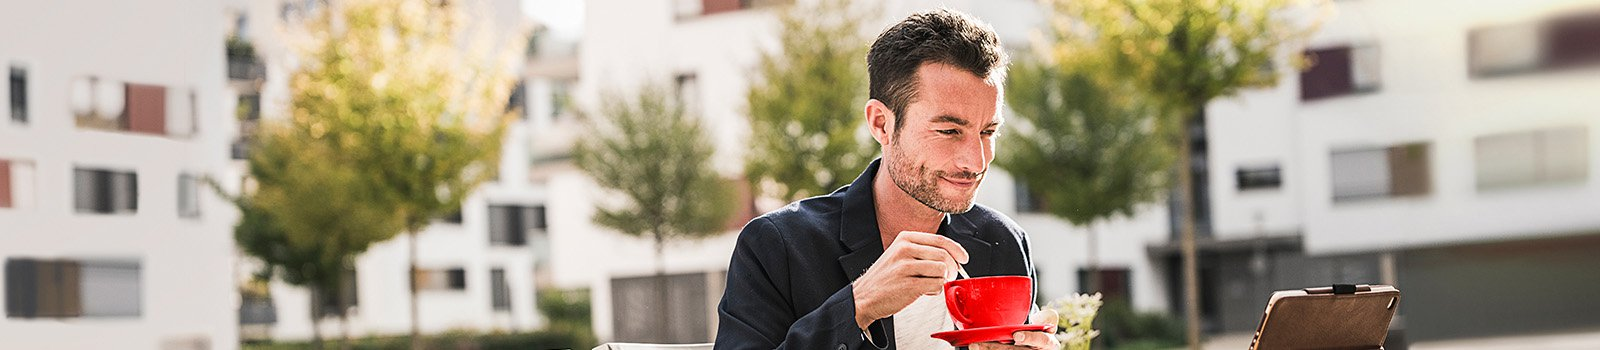 Man sitting at cafe drinking coffee